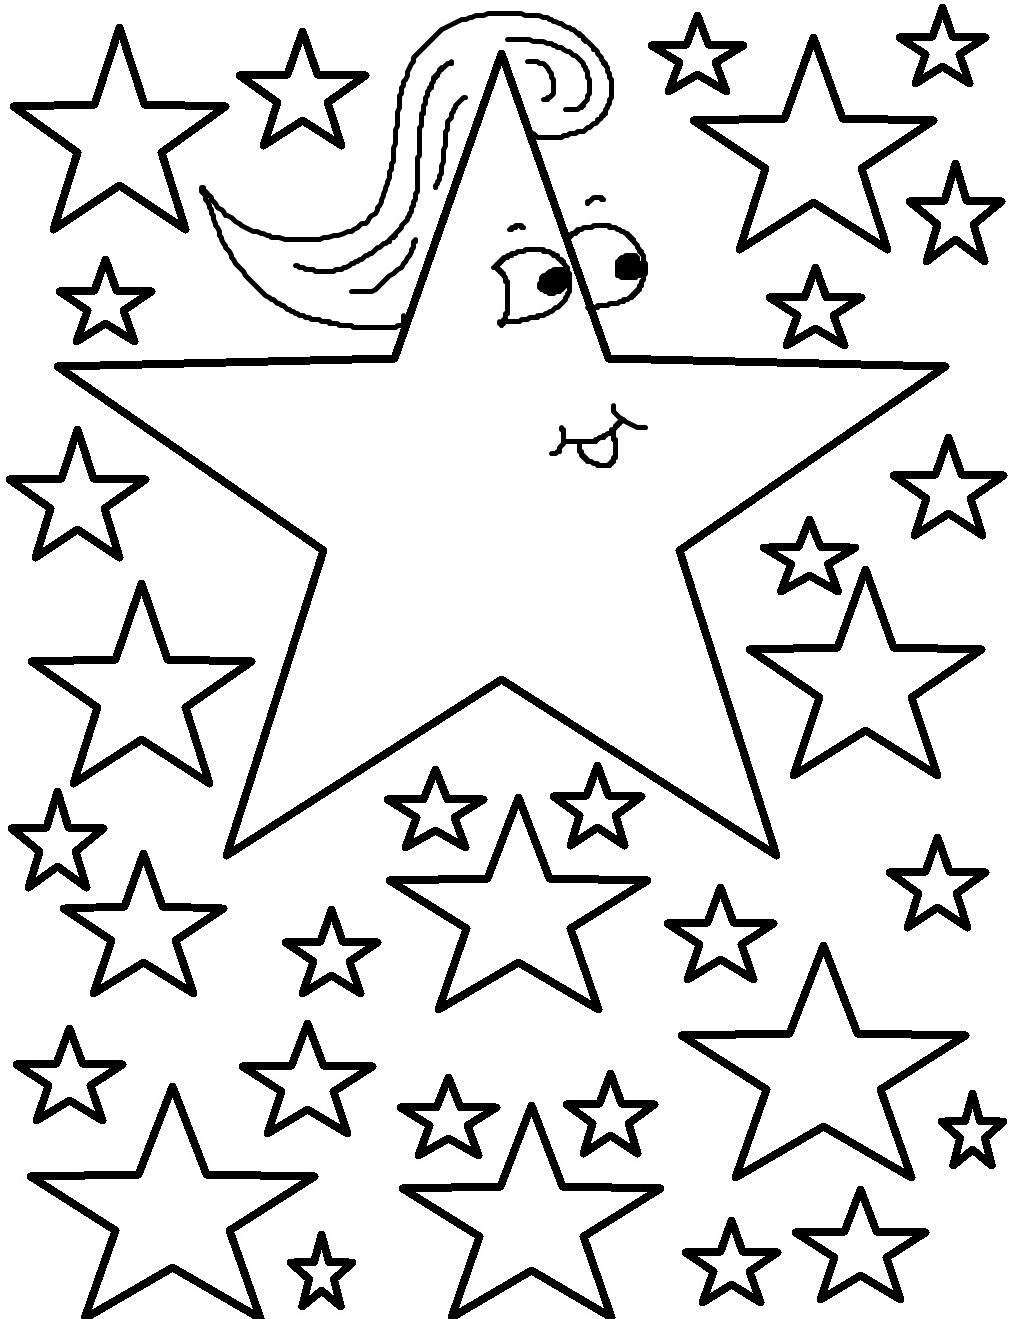 stars coloring pages kindergarten worksheet guide pictures clip art line coloring stars pages